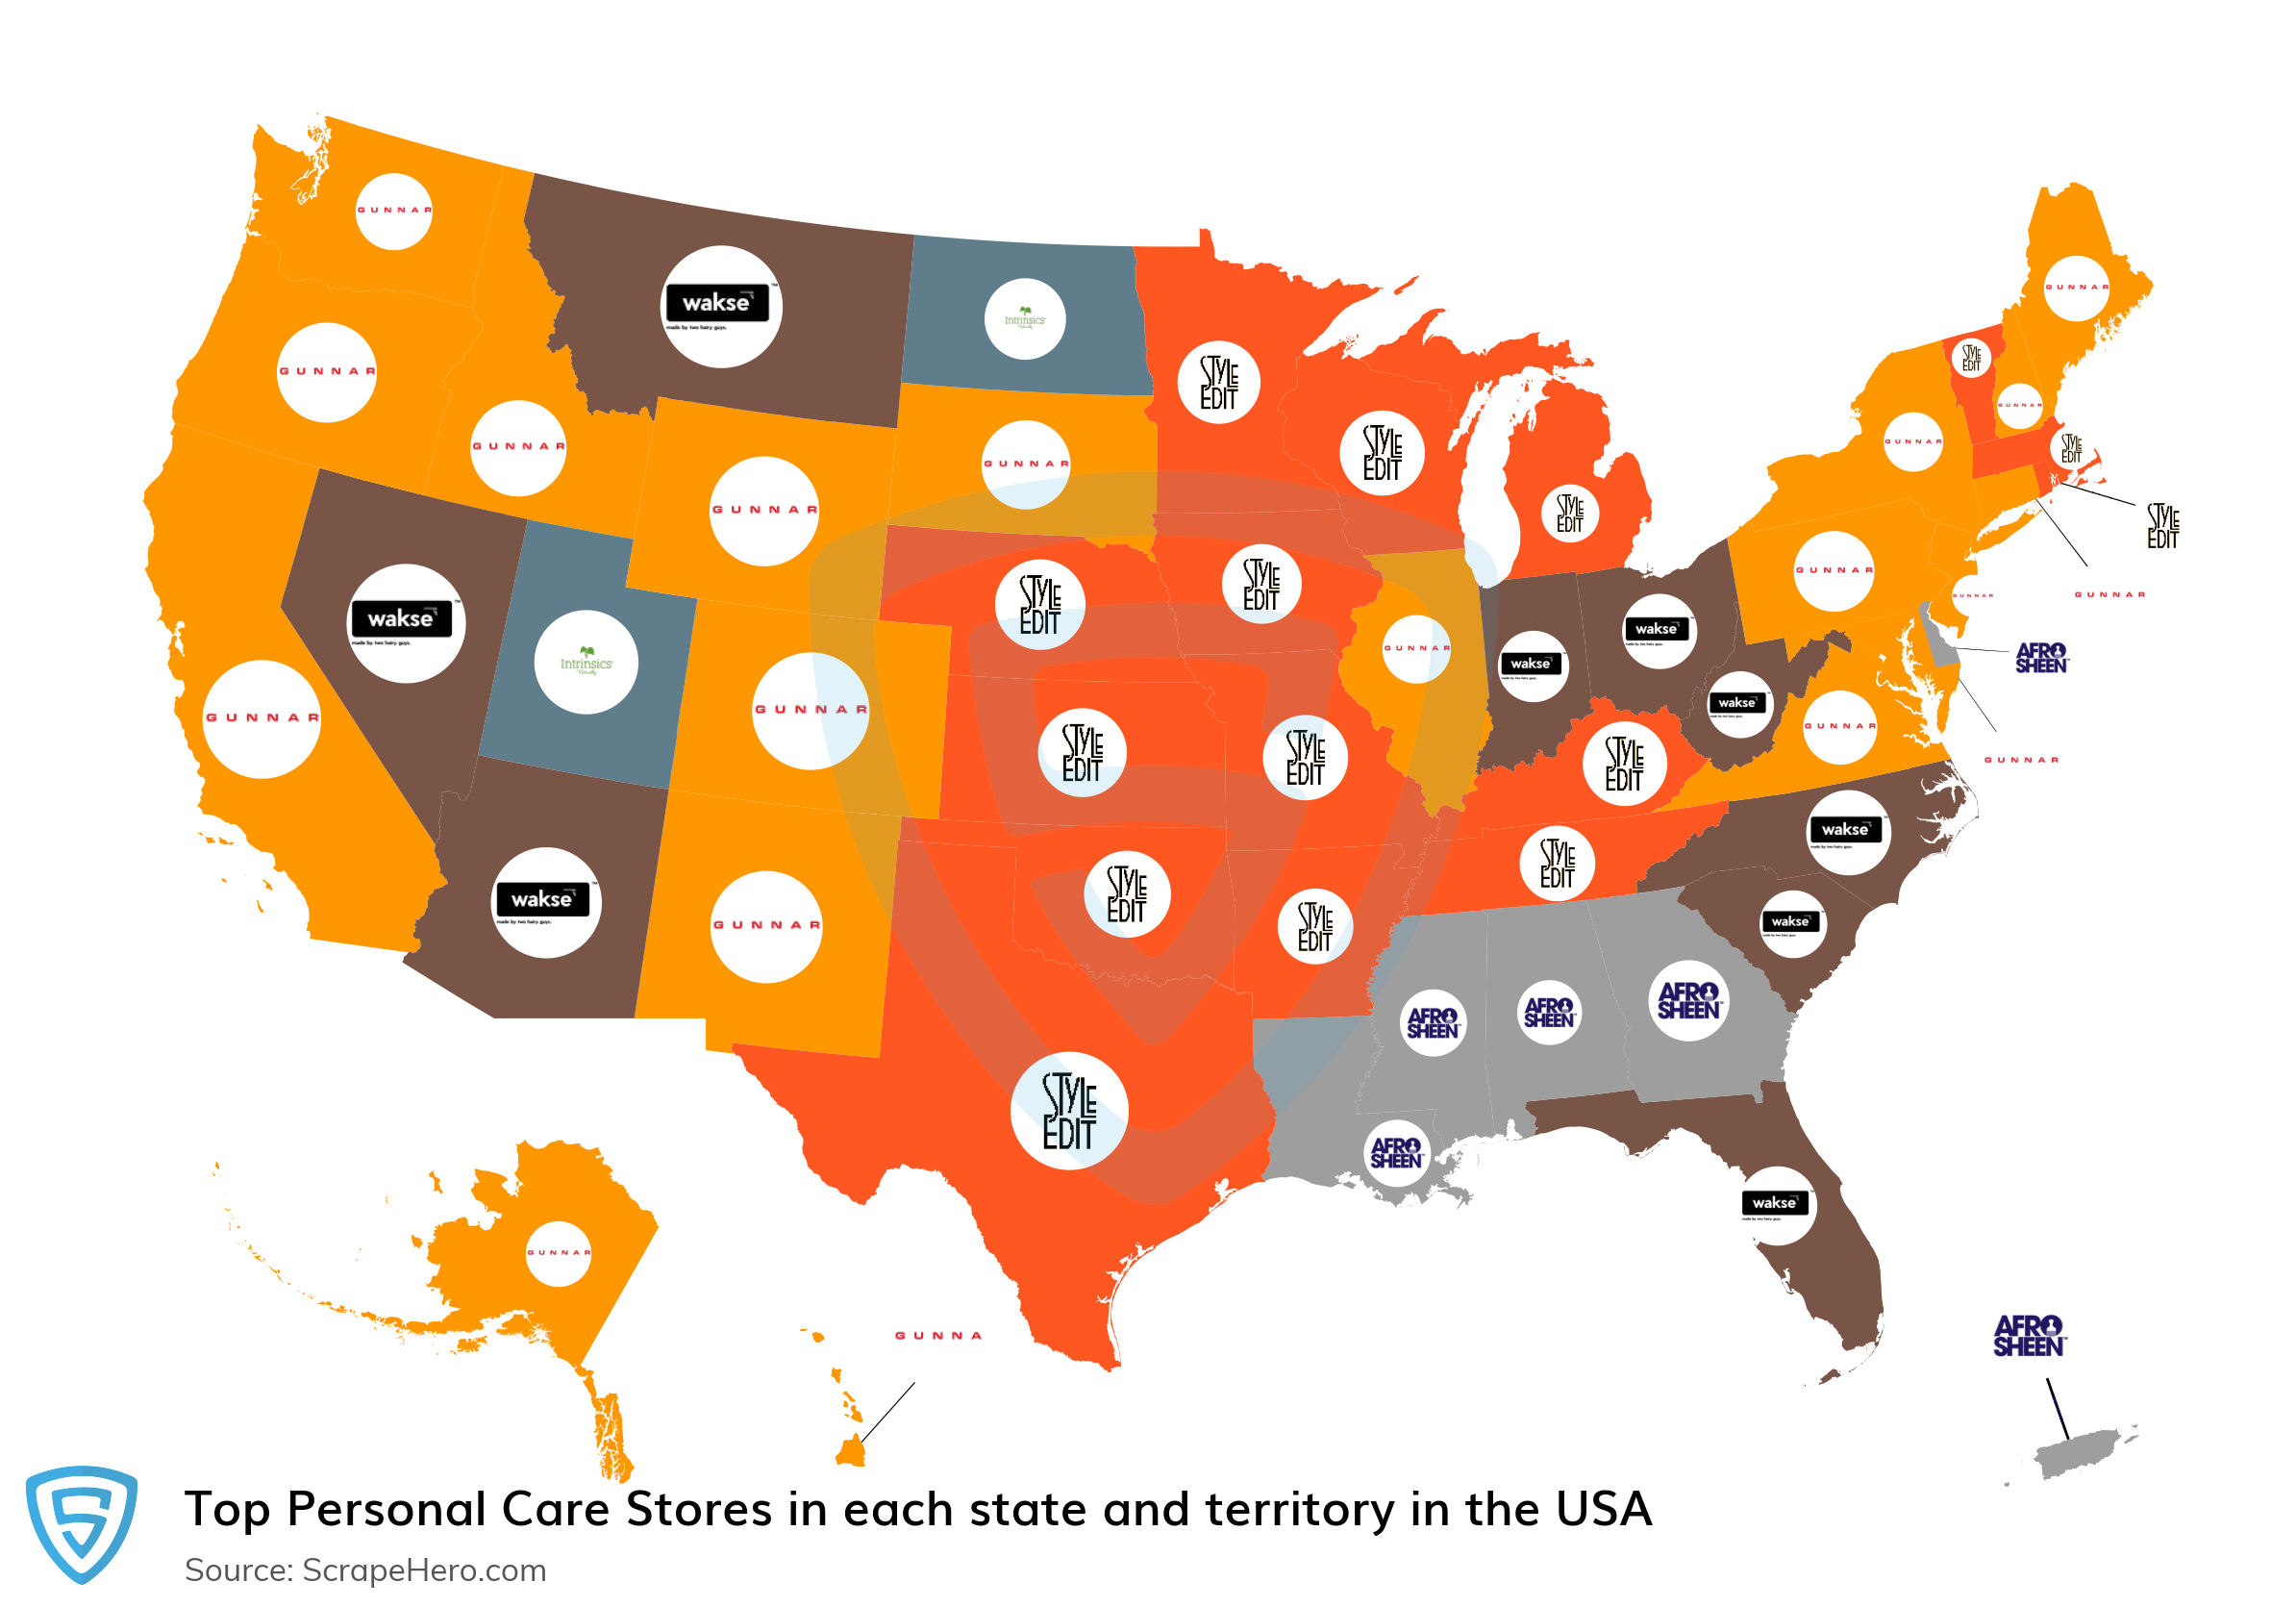 Map of top personal care stores in each state and territory in the United States in 2021